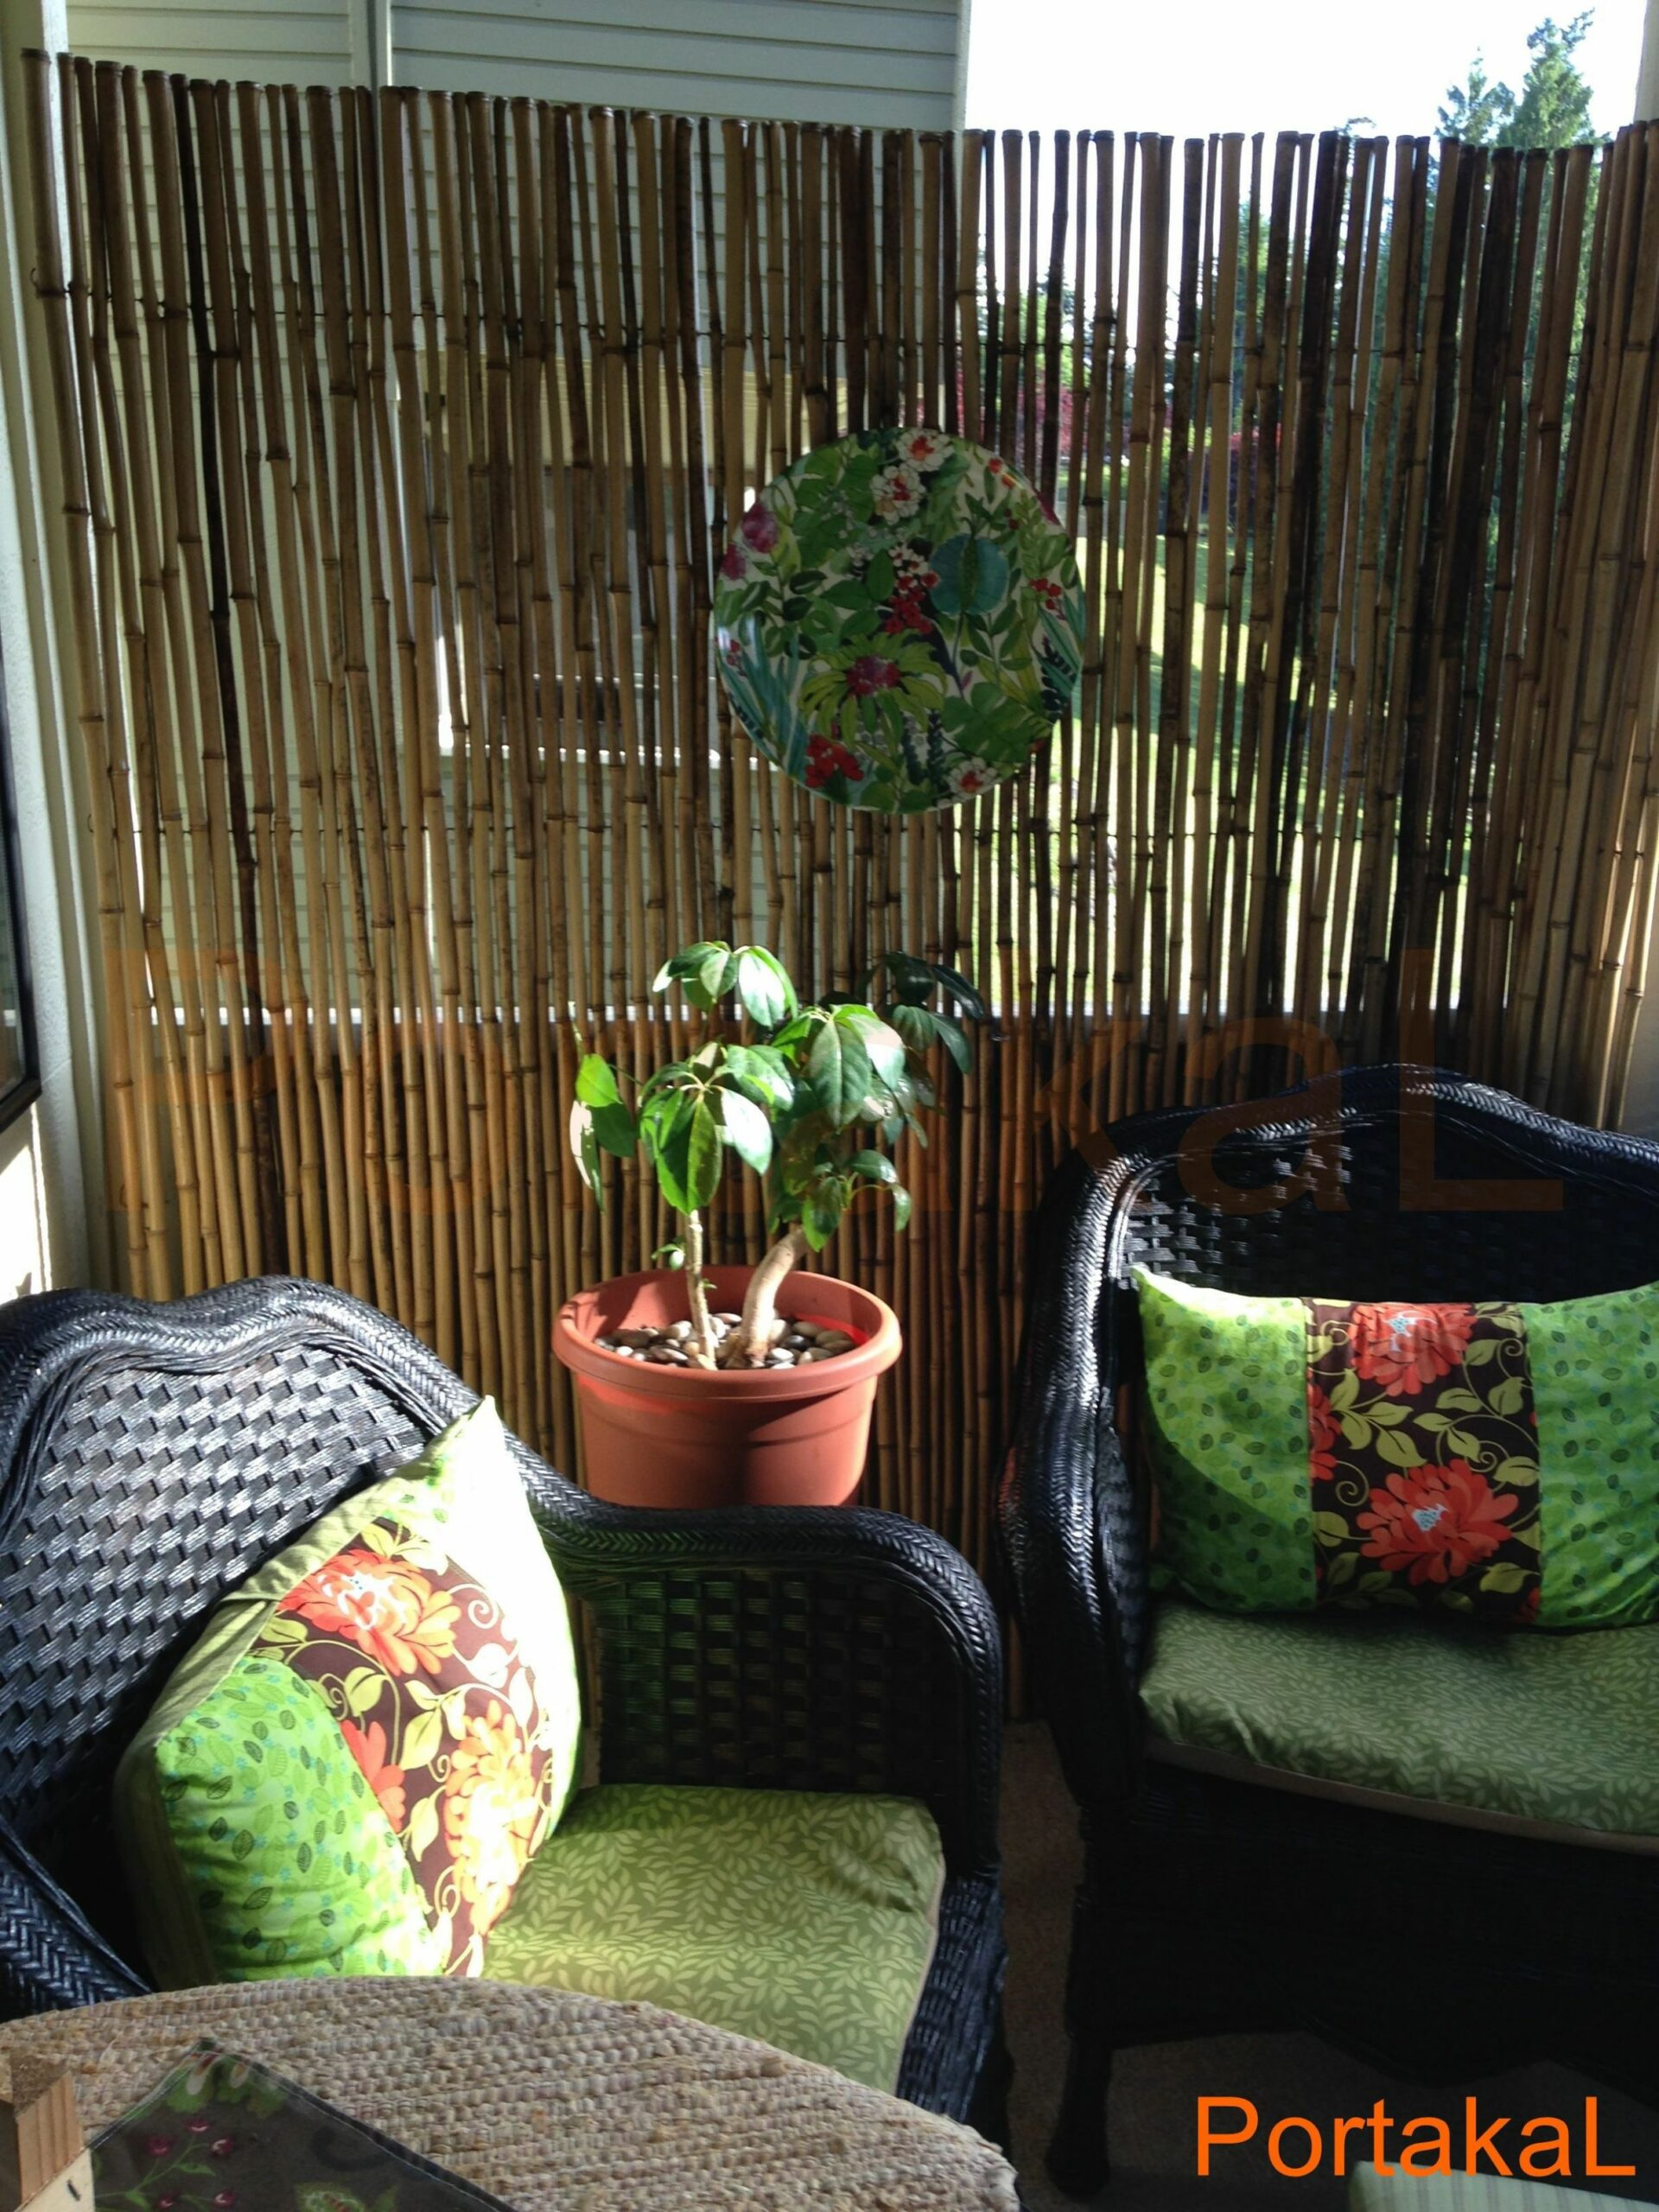 Balcony Ideas in 8 (With images) | Balcony privacy, Small ...